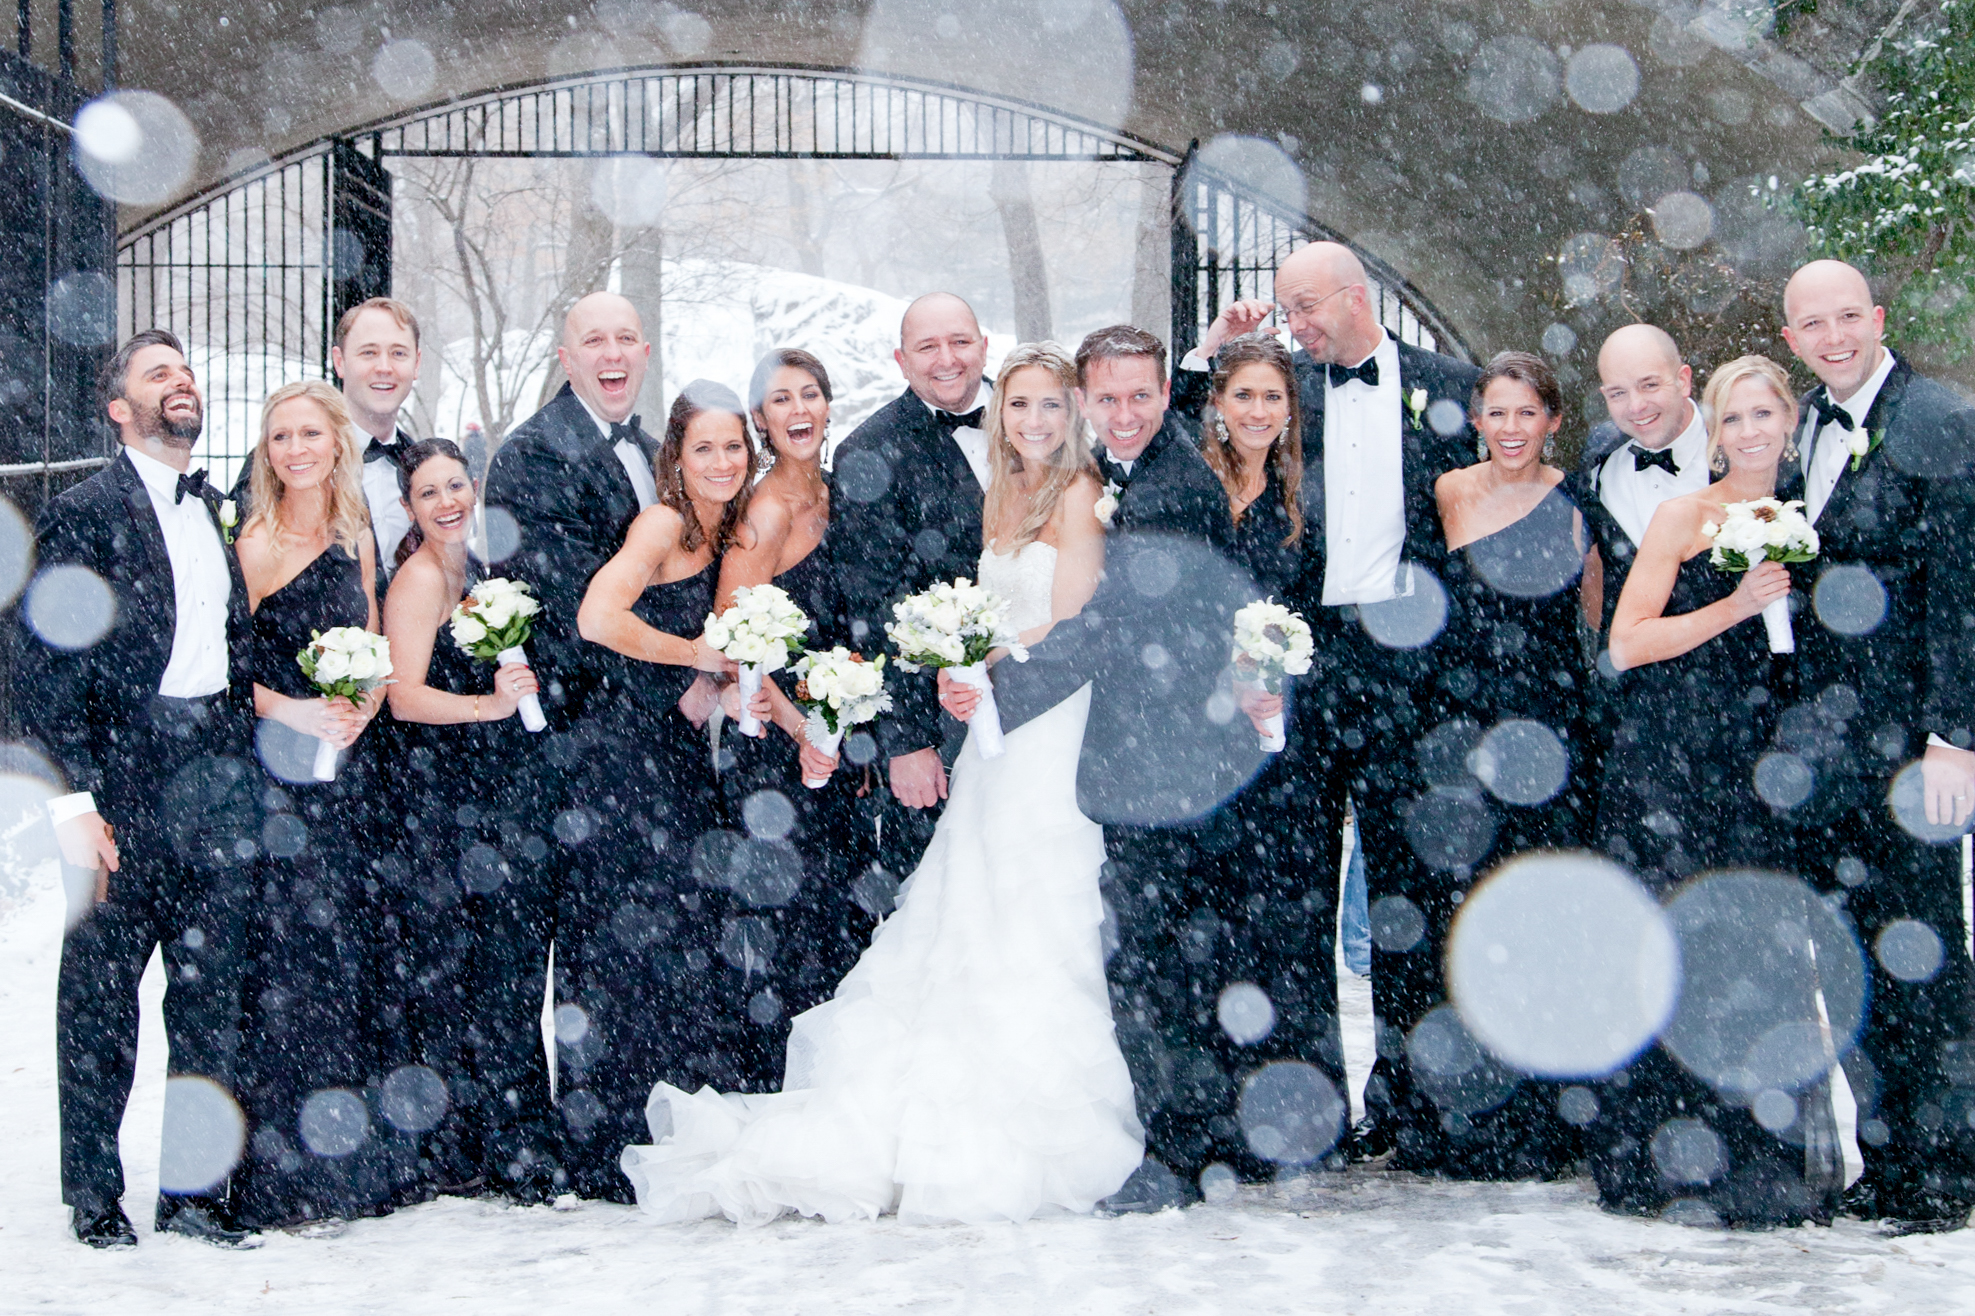 071_CarlyGaebe_SteadfastStudio_WeddingPhotography_NewYorkCity_CentralPark_Winter_Romantic_Snowing_Bride_Groom_Bouquet_Ring_WeddingParty.jpg